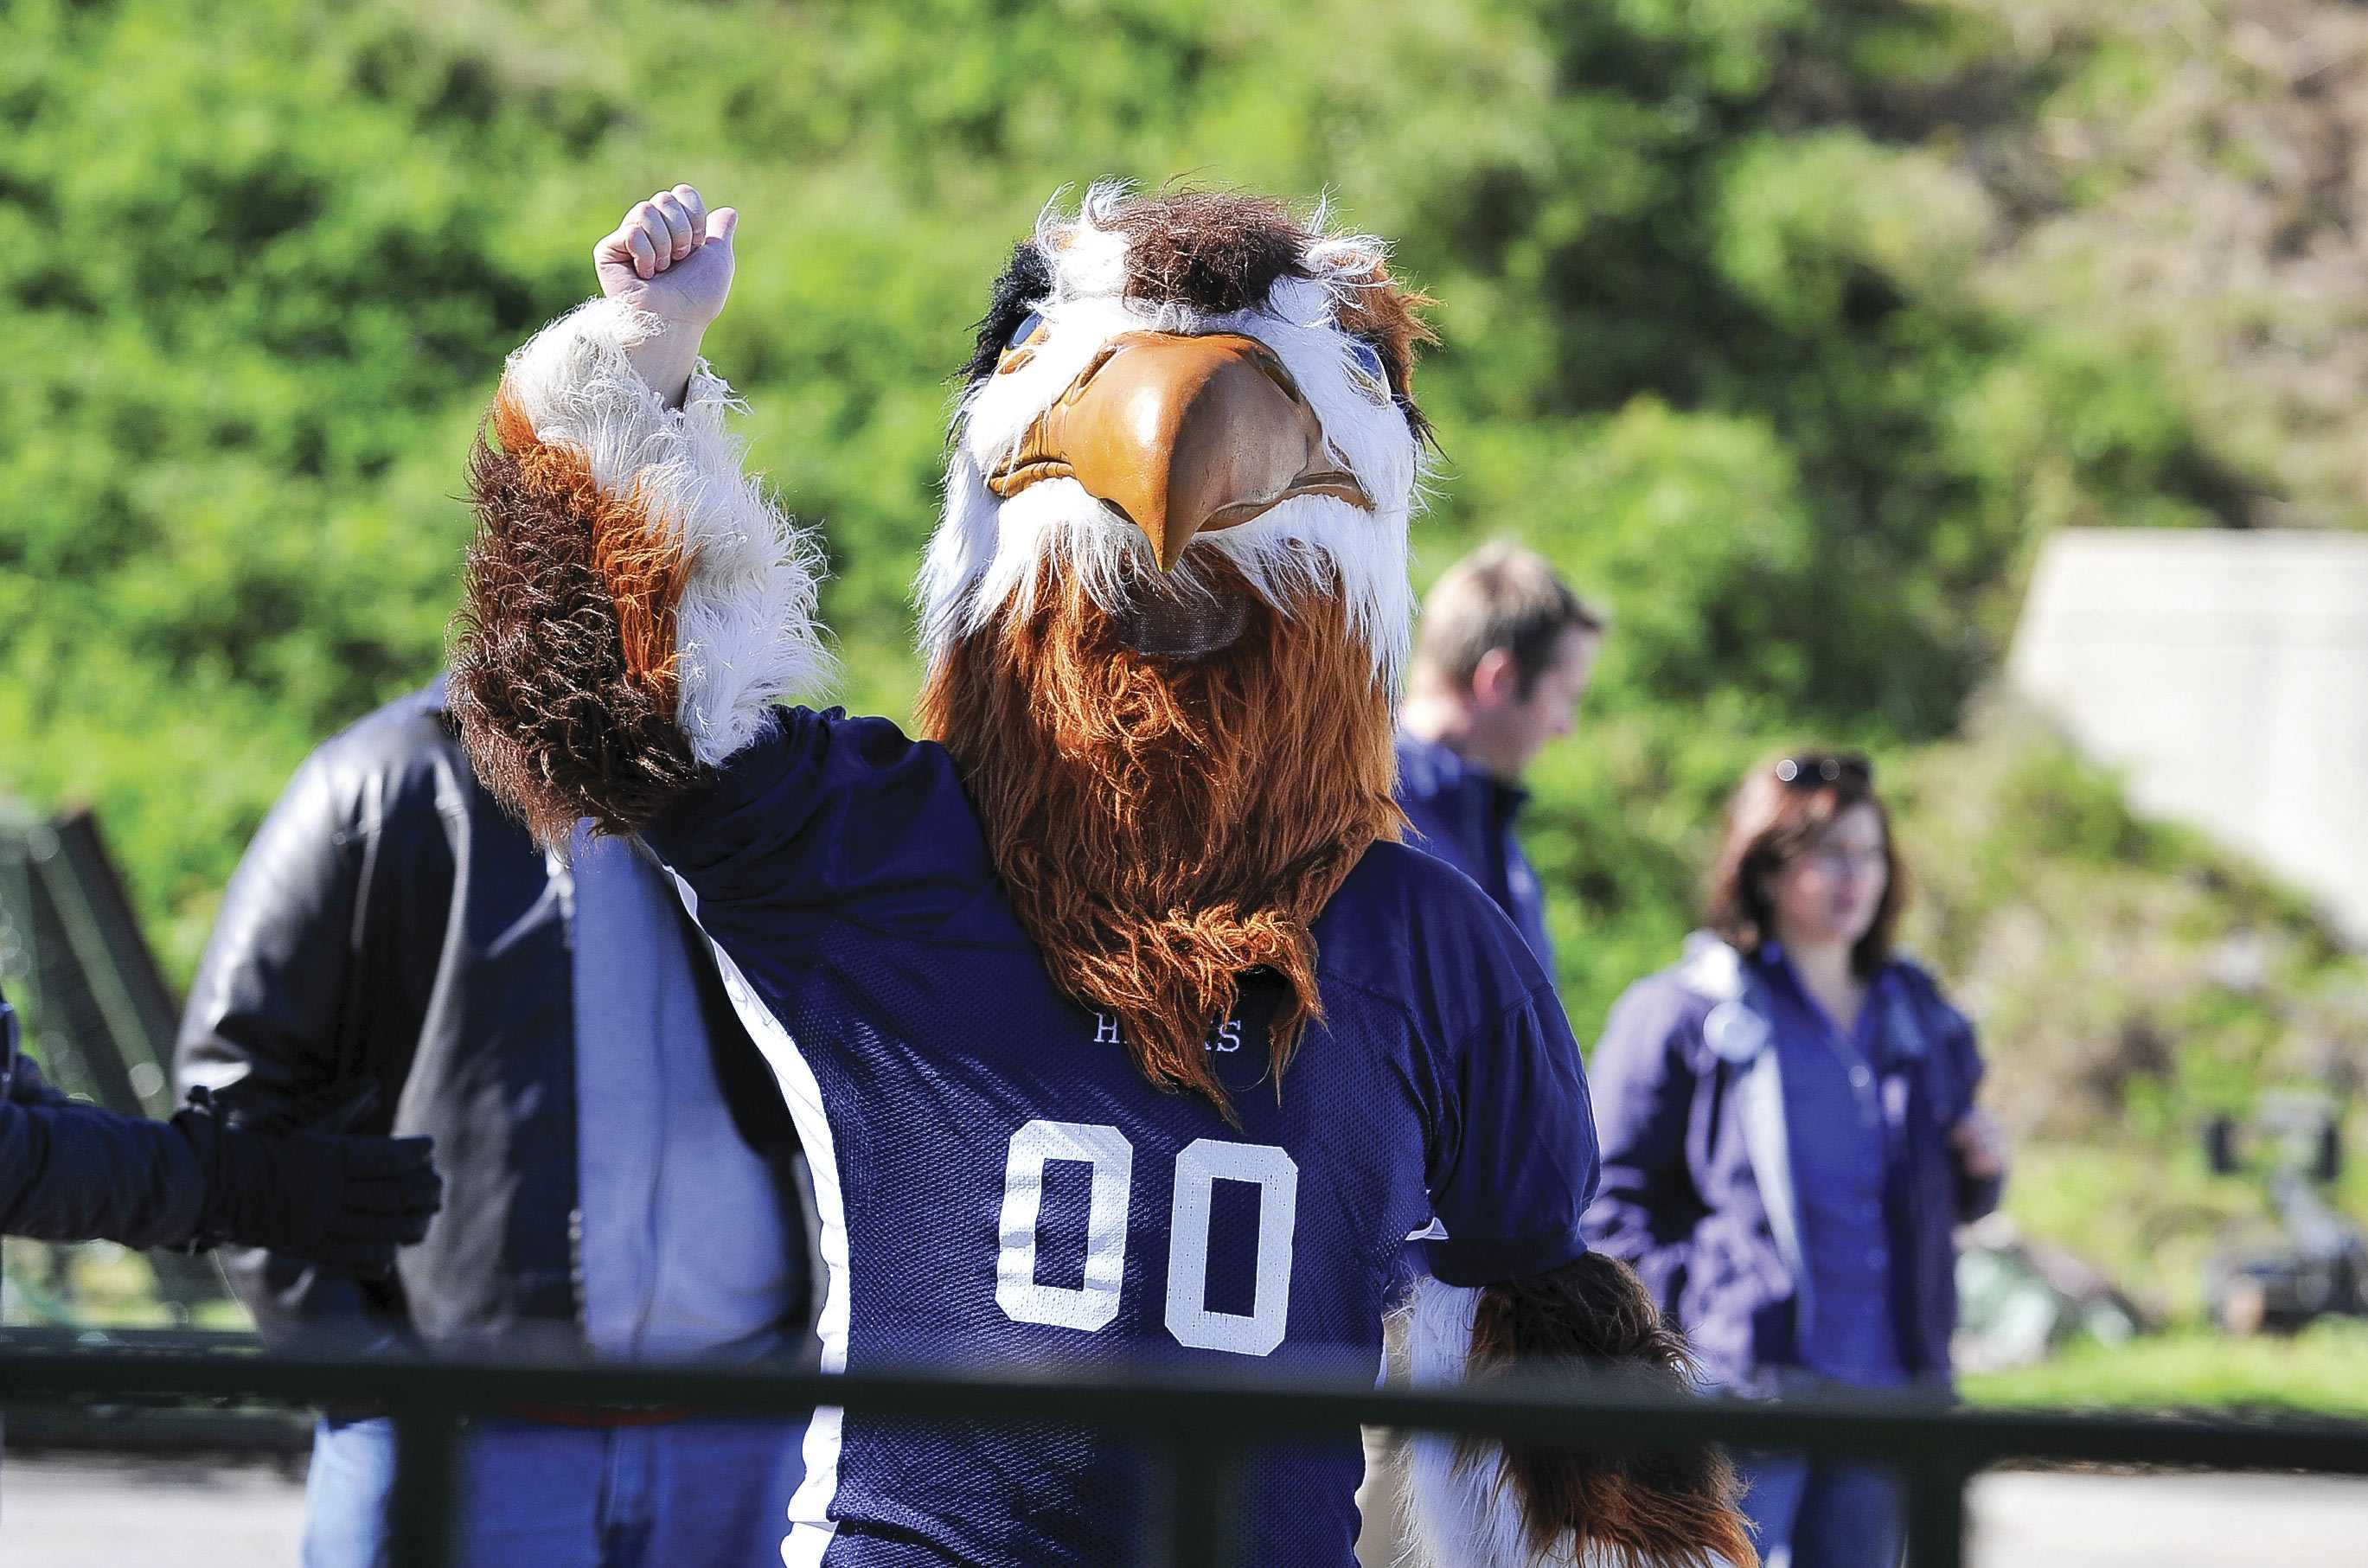 The Saint Anselm Hawk mascot.